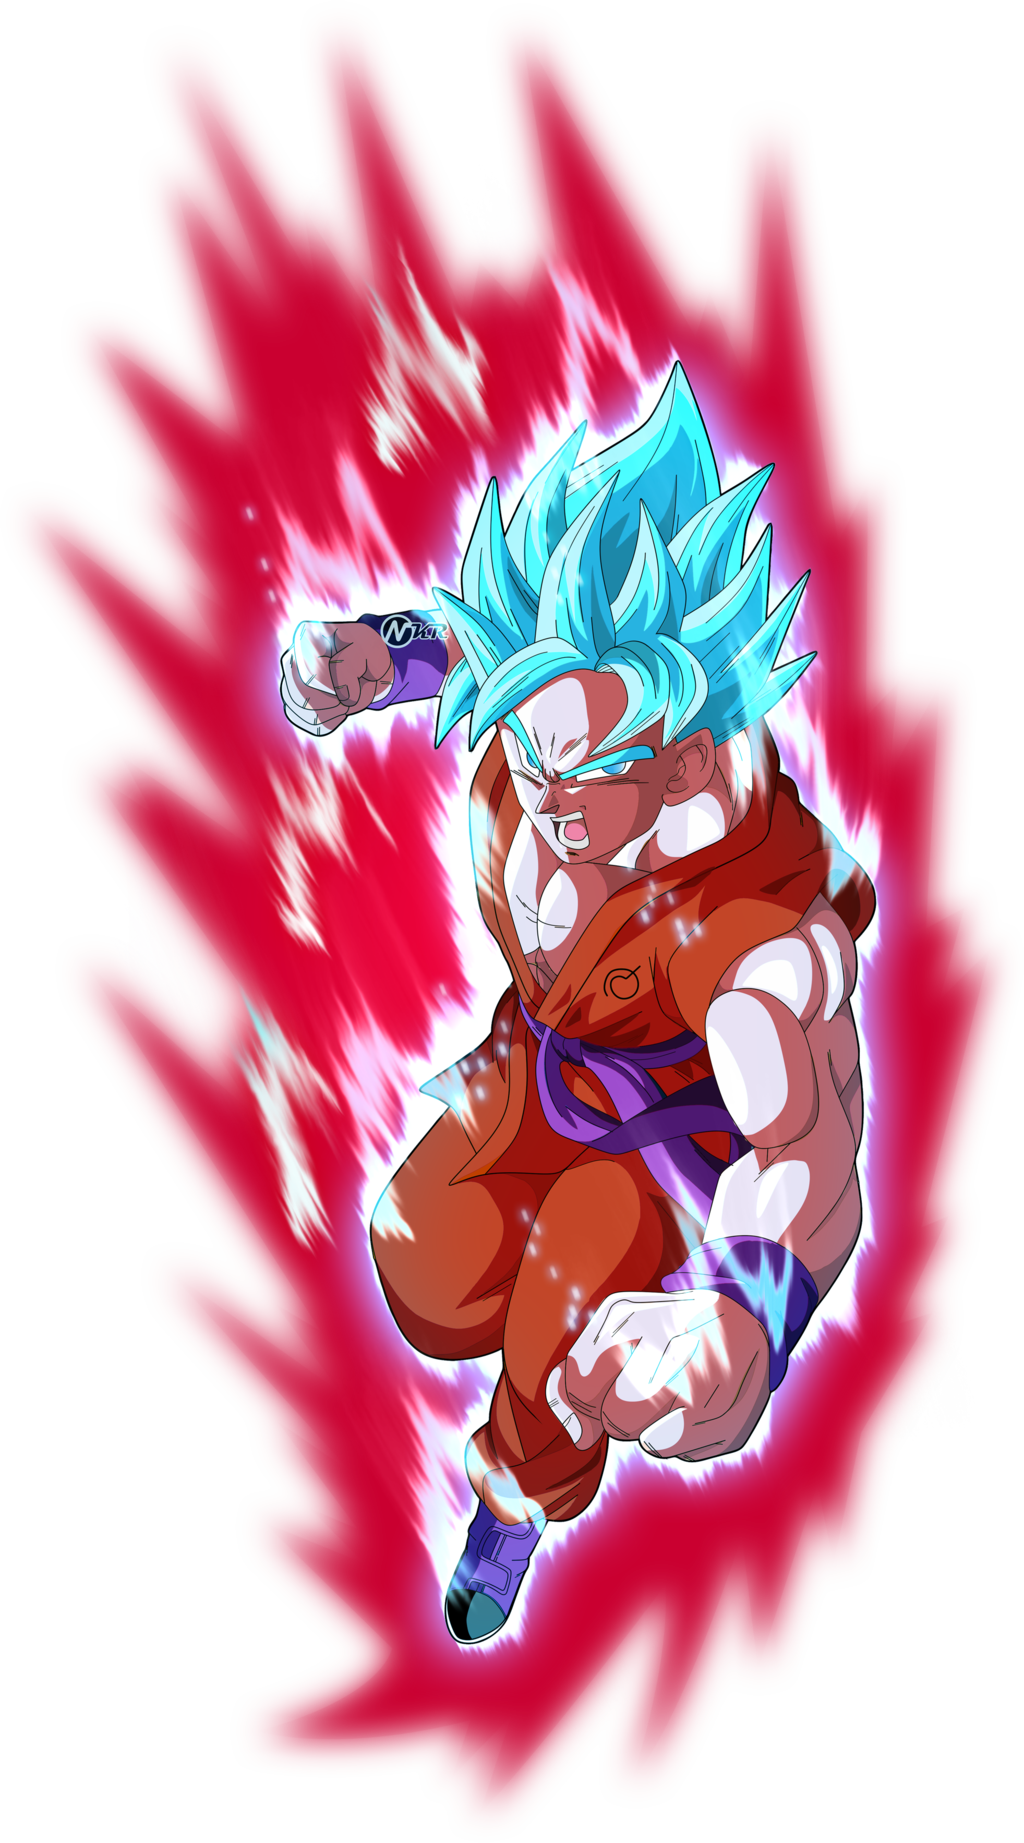 Best 25 goku super saiyan 10 ideas on pinterest goku super saiyan 7 dbz super saiyan and - Super sayen 10 ...